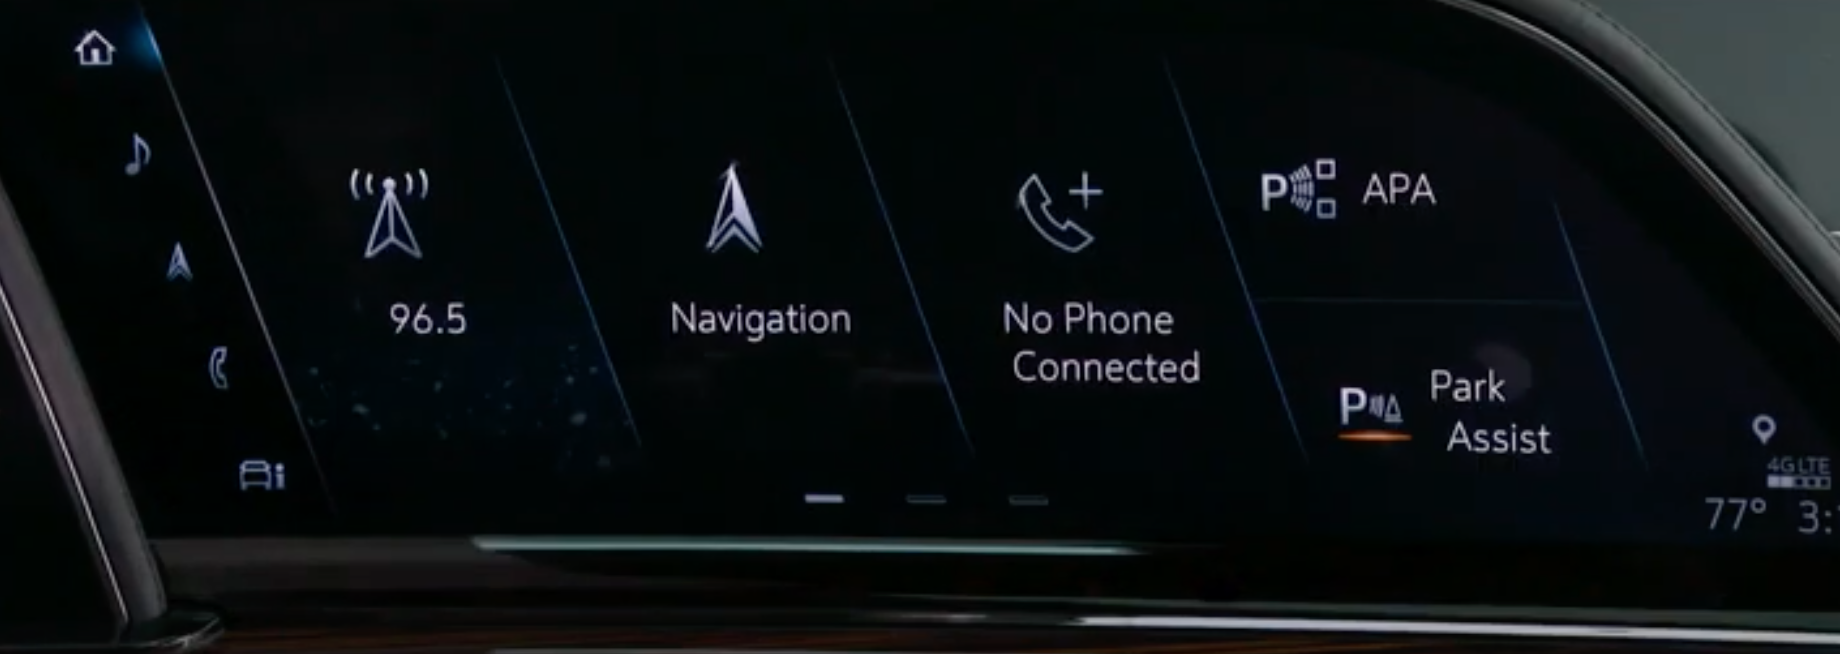 A view of the homescreen divided into main apps such as navigation, player or phone connectivity